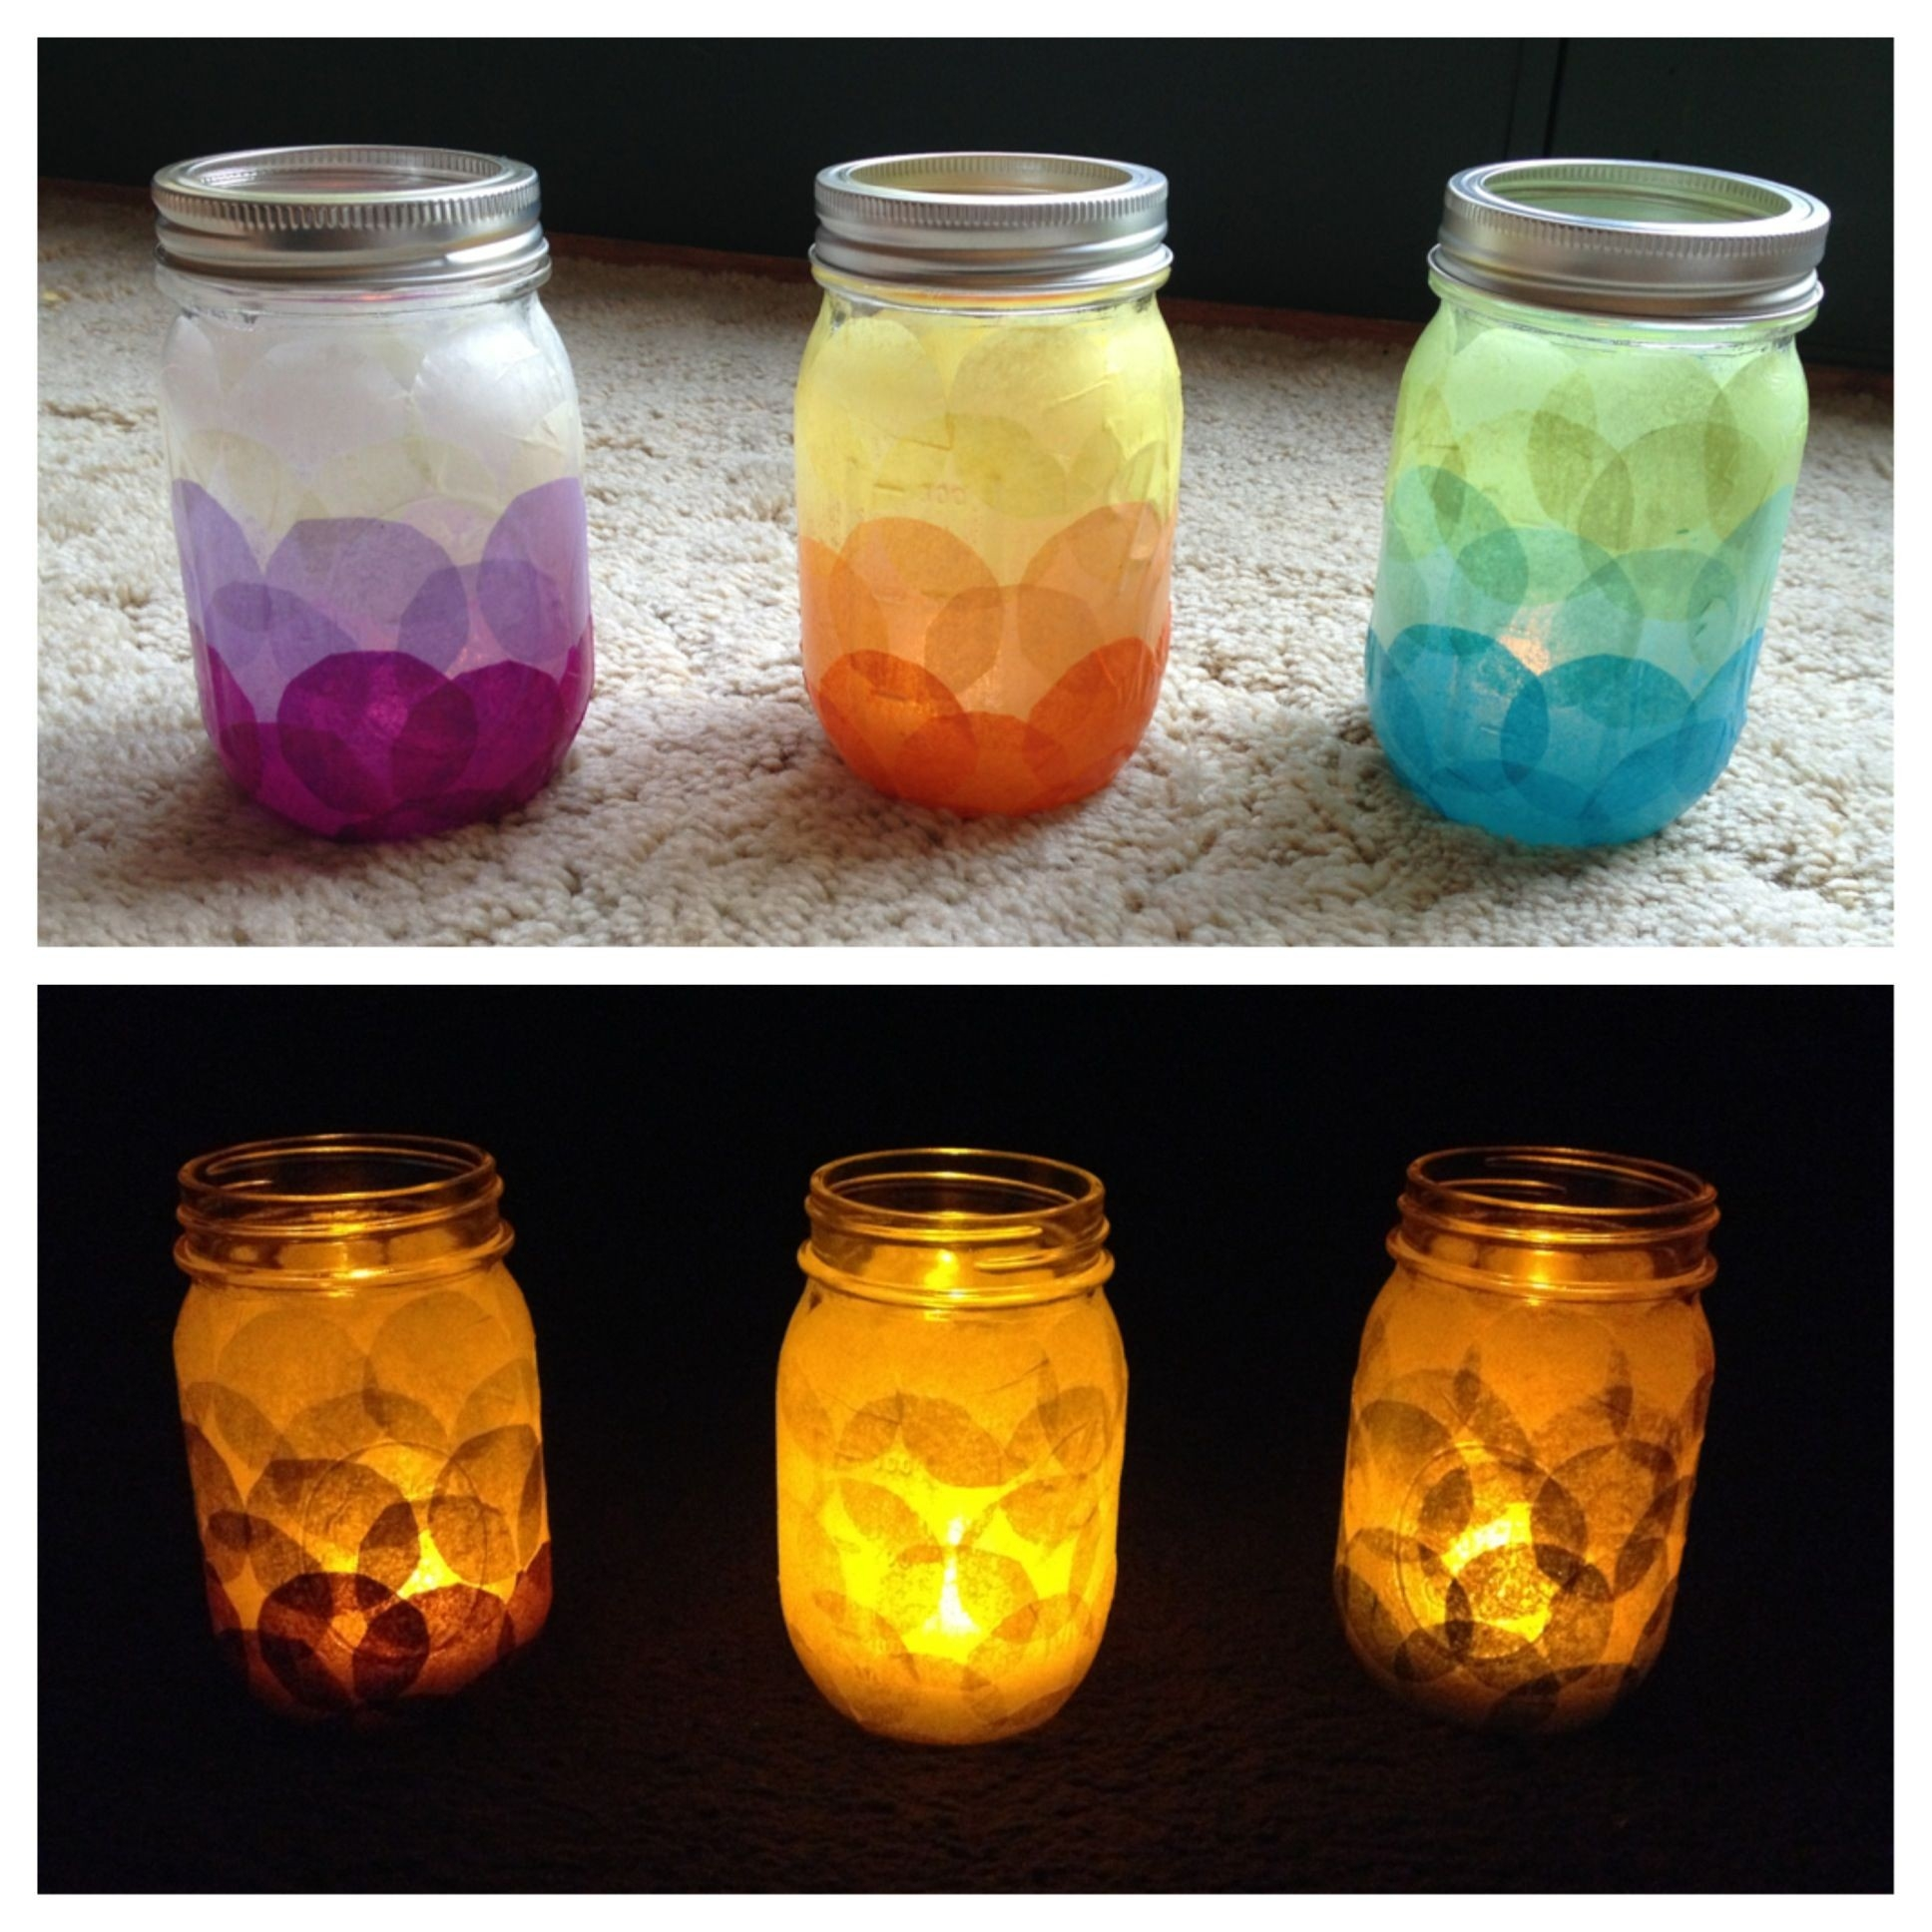 Diy Candle Holders! Tissue Paper Glued With Modge Podge Onto A intended for Tissue Paper Jar Crafts 29010